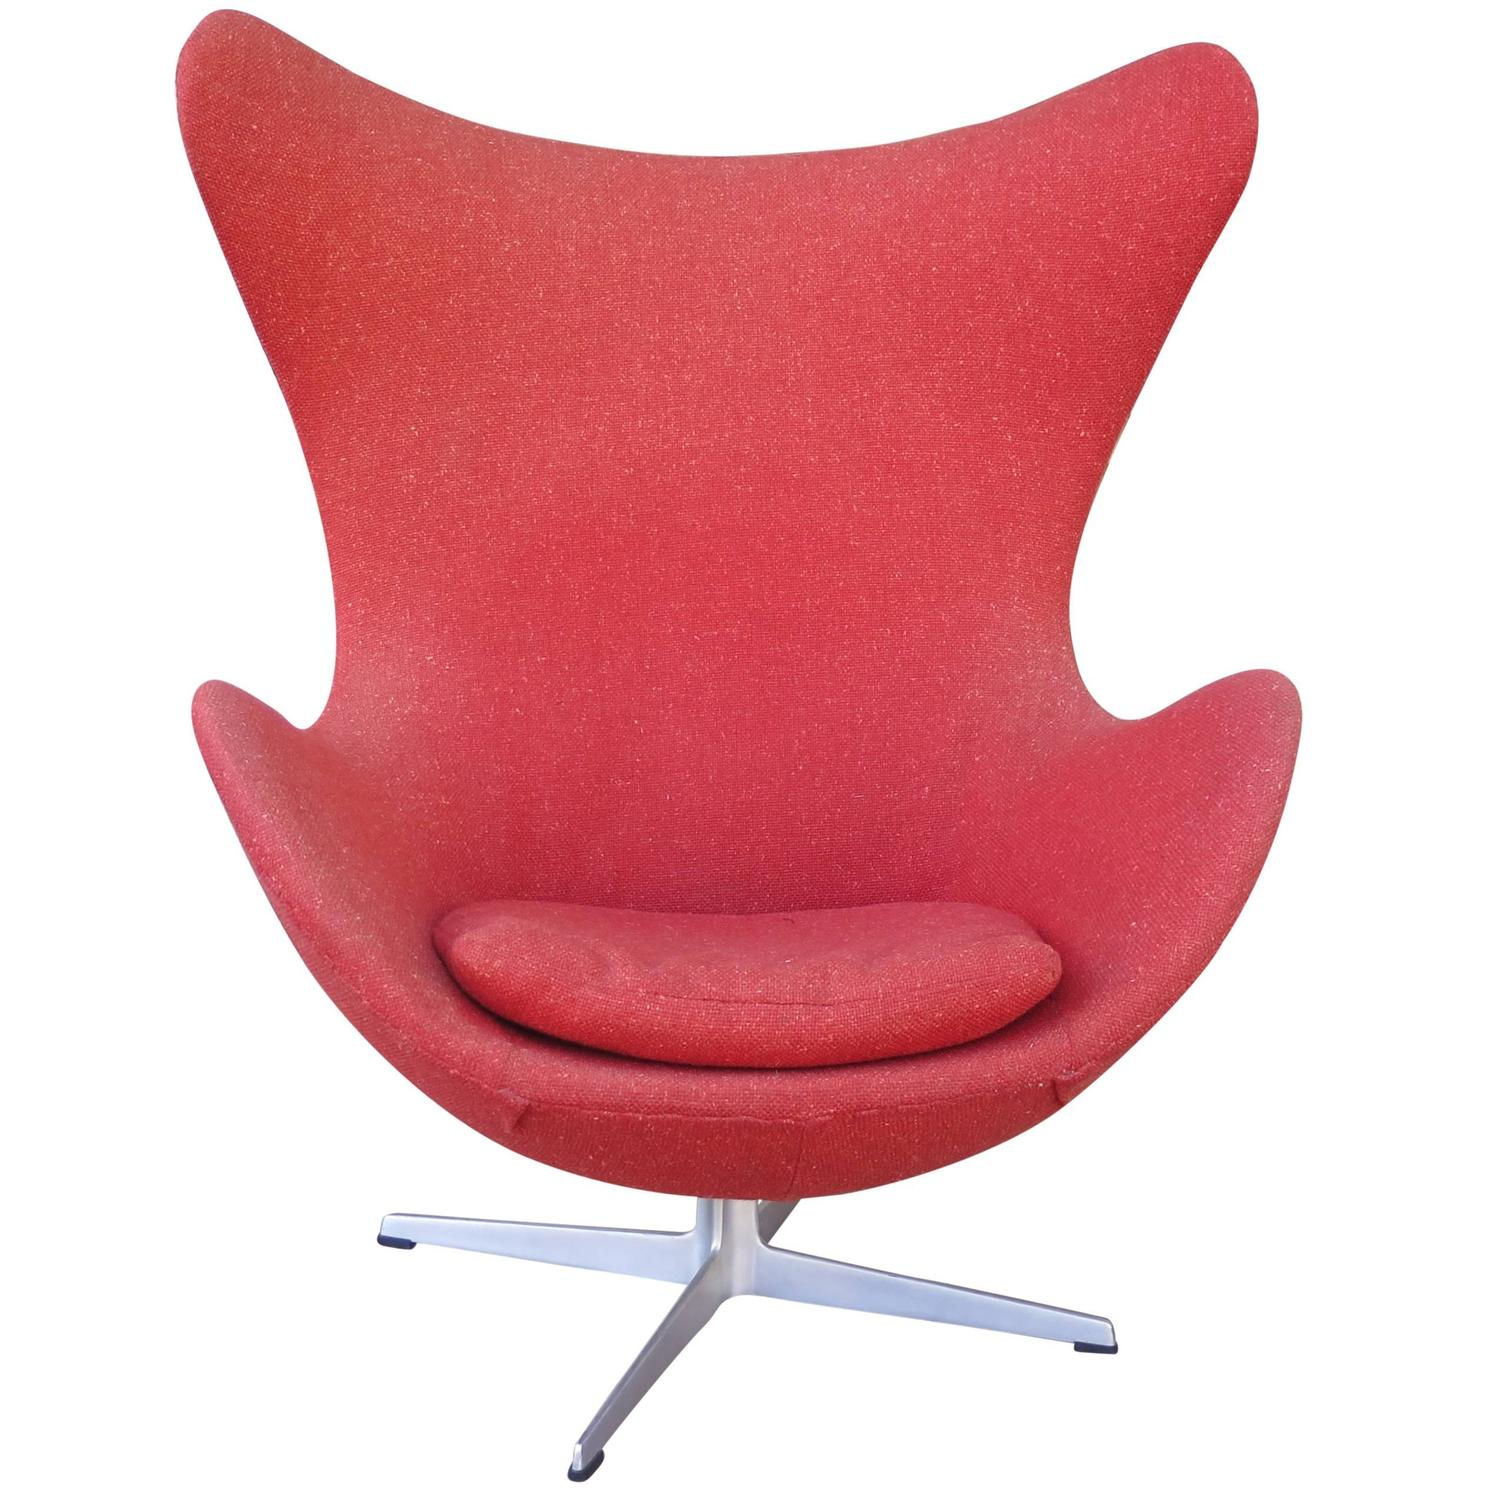 Original Arne Jacobsen Egg Chair in Original Upholstery Fritz